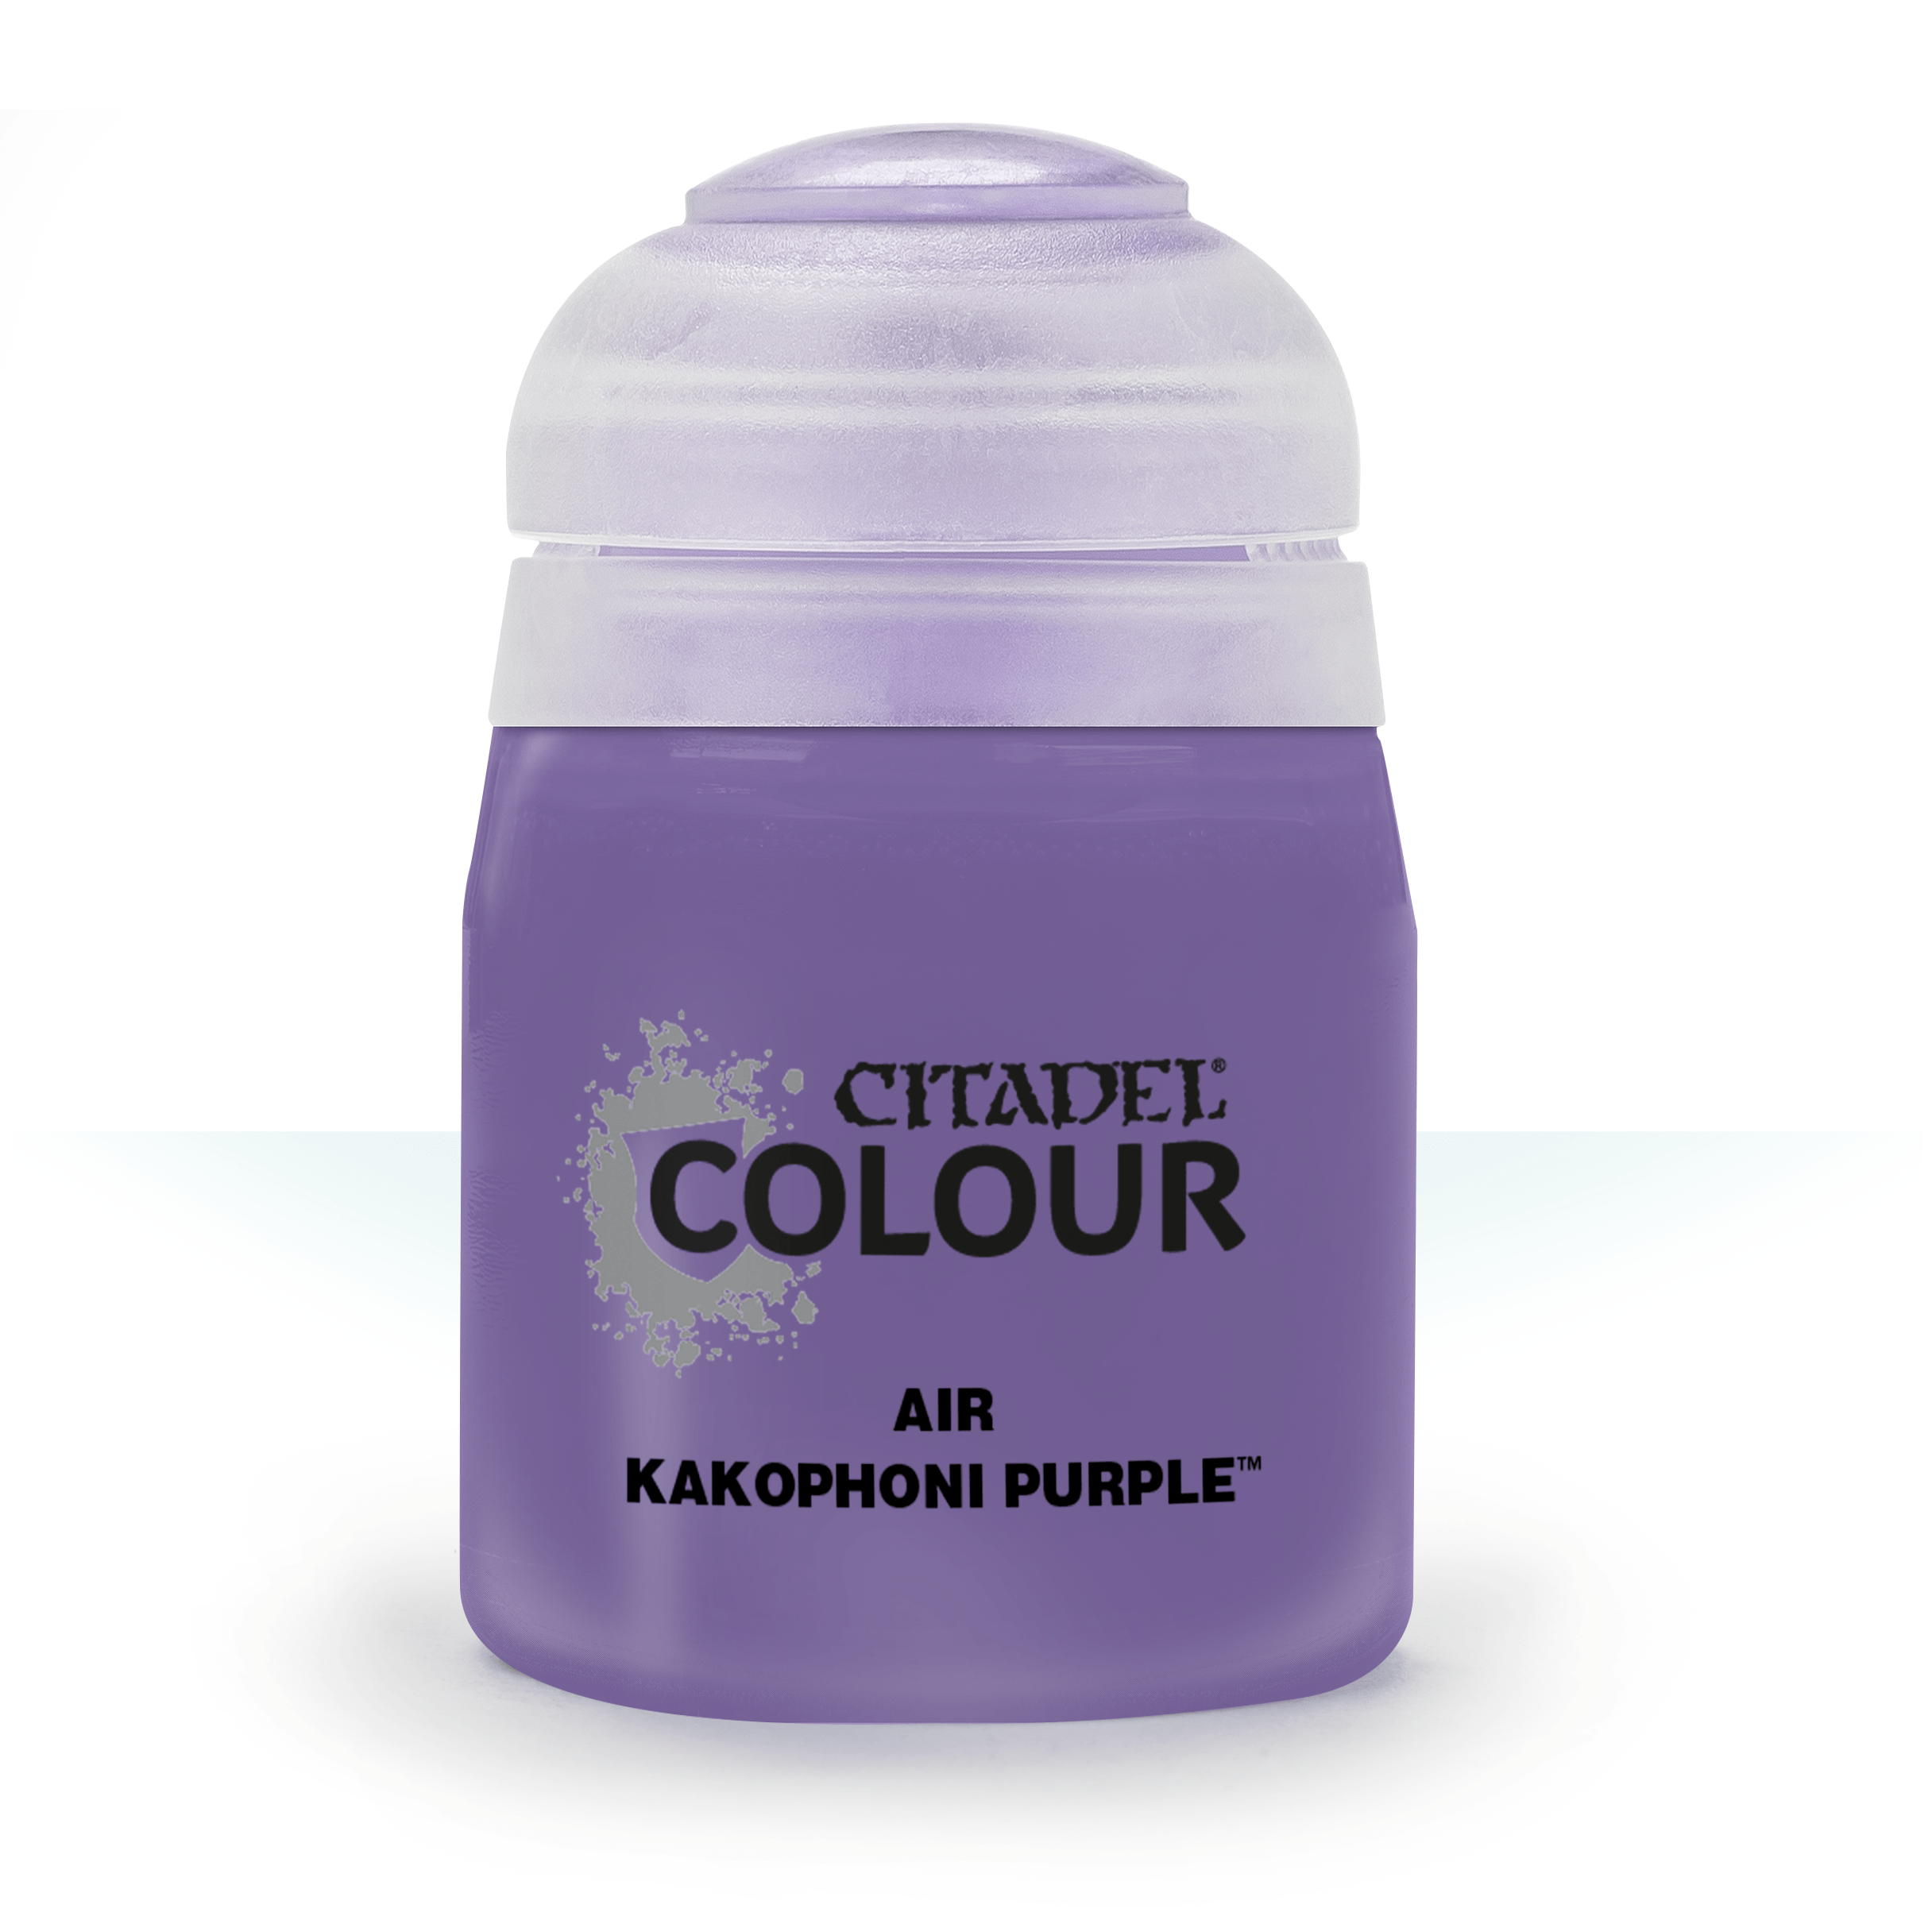 Citadel Airbrush Paints: Kakophoni Purple